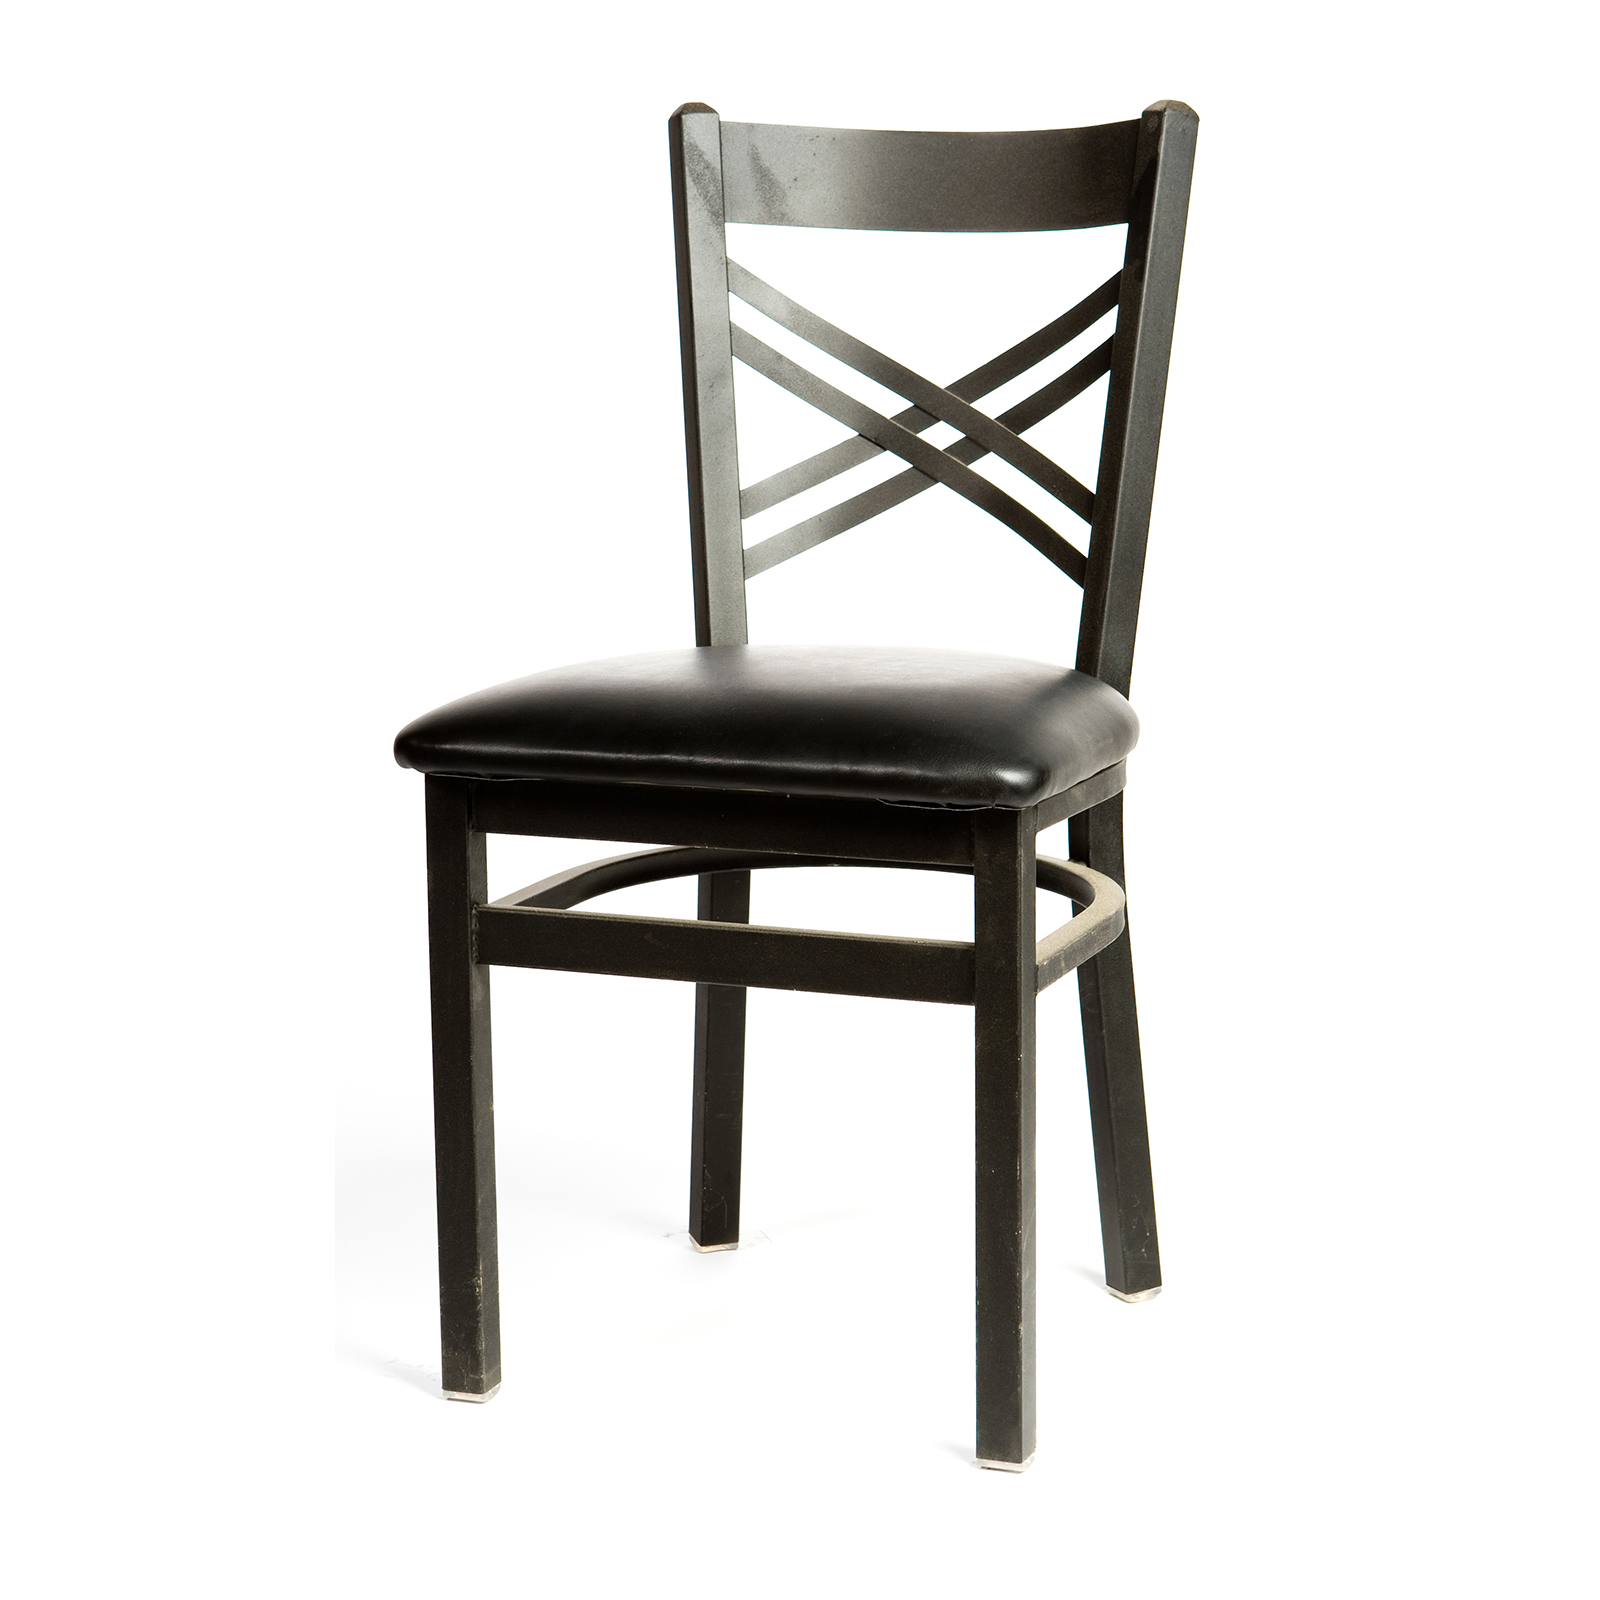 Oak Street SL2130-RW chair, side, indoor